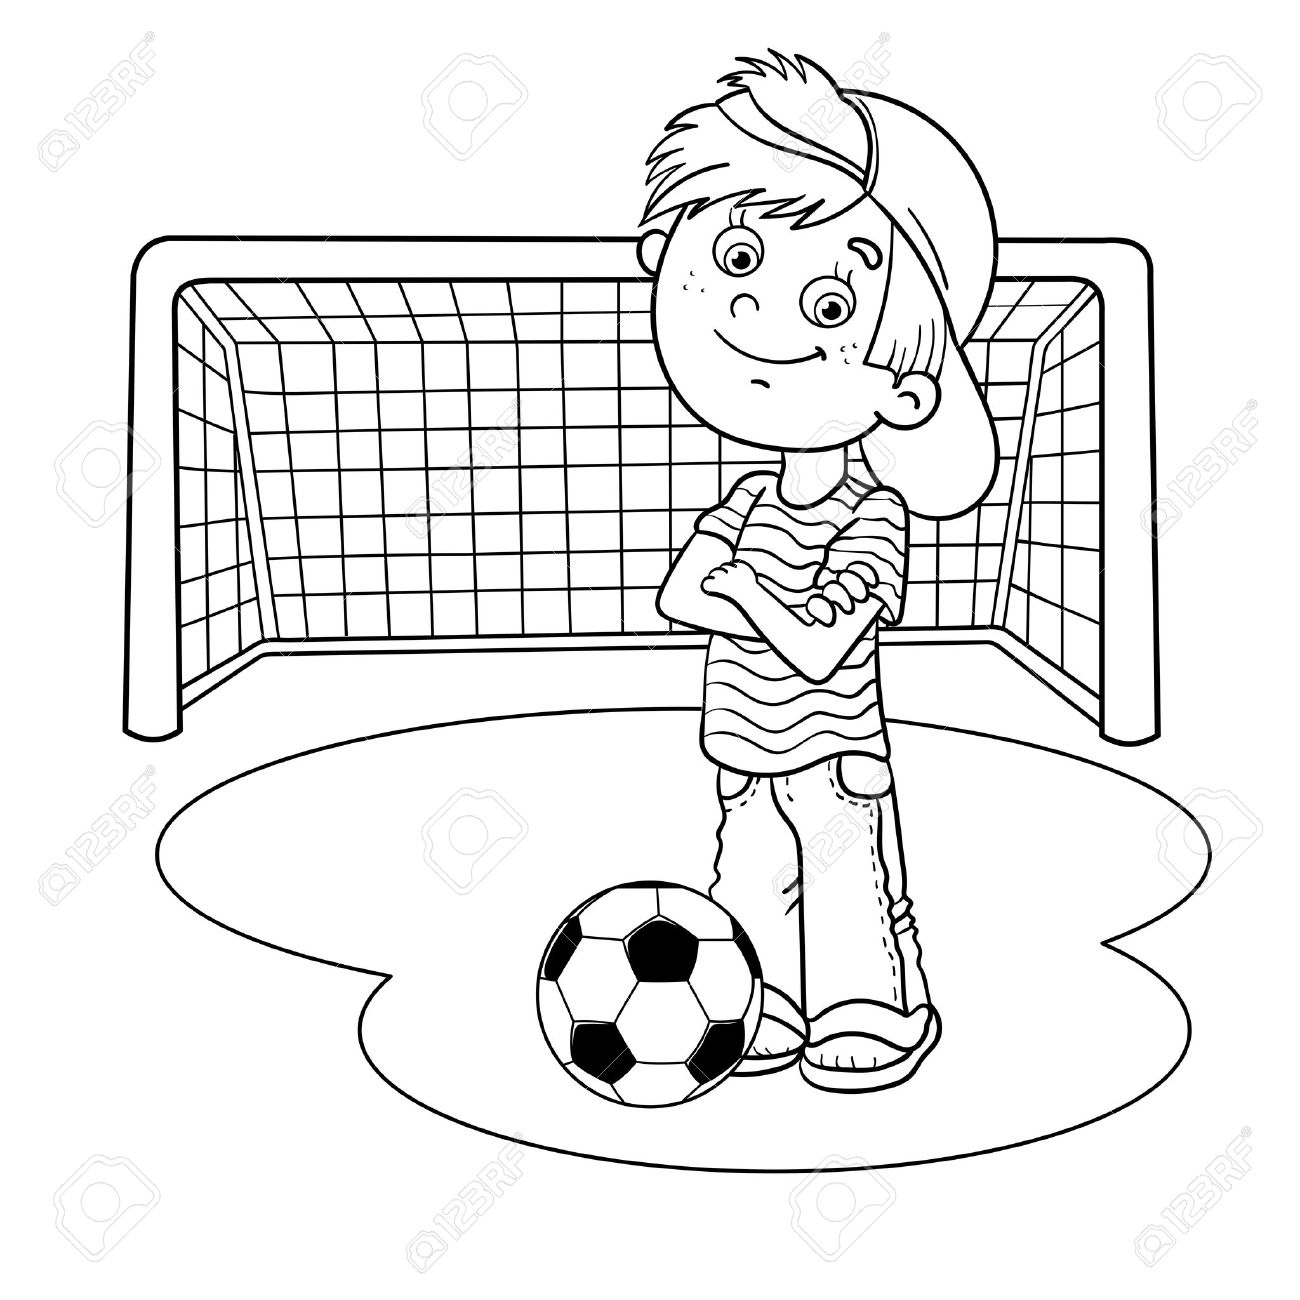 Football Outline Drawing At Getdrawings